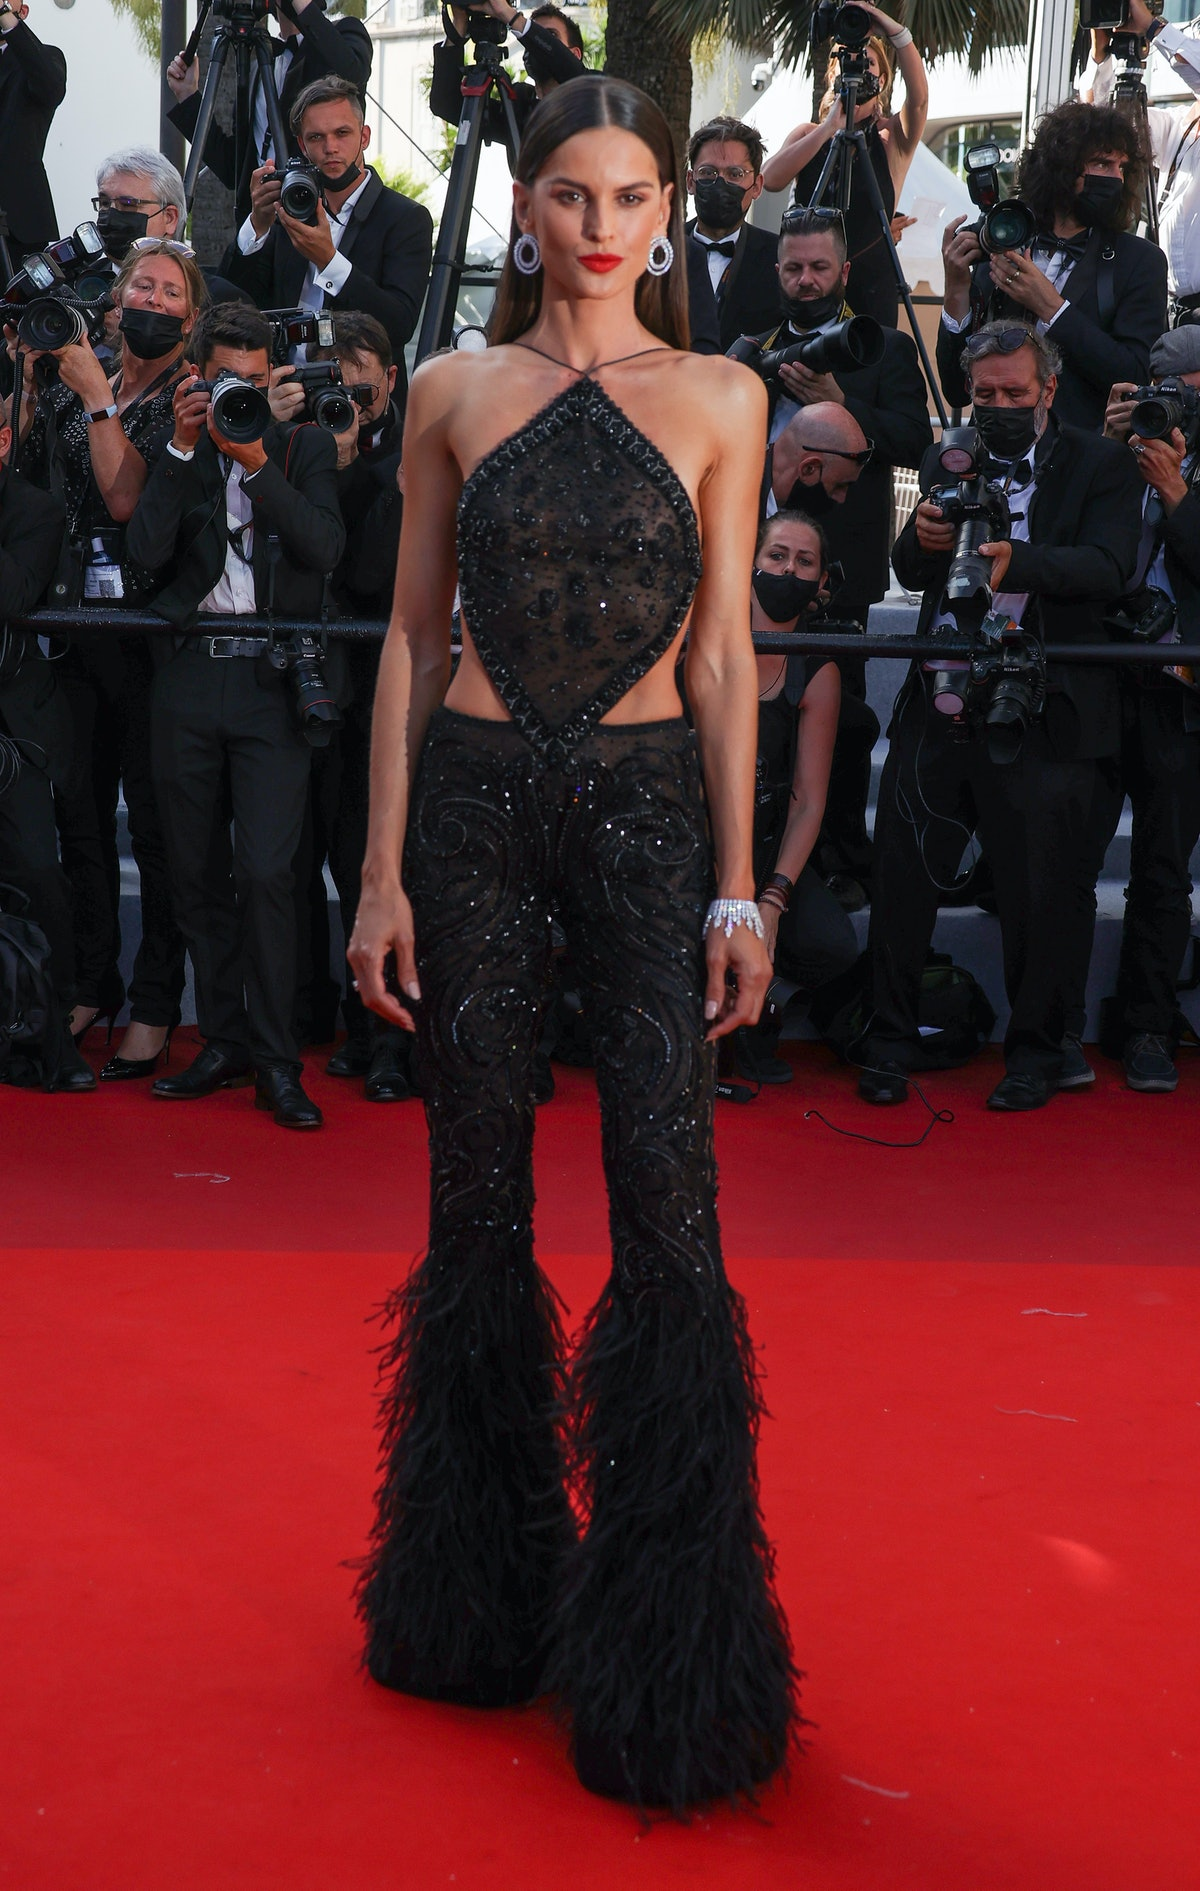 """CANNES, FRANCE - JULY 08: Izabel Goulart attends the """"Stillwater"""" screening during the 74th annual Cannes Film Festival on July 08, 2021 in Cannes, France. (Photo by Mike Marsland/WireImage)"""